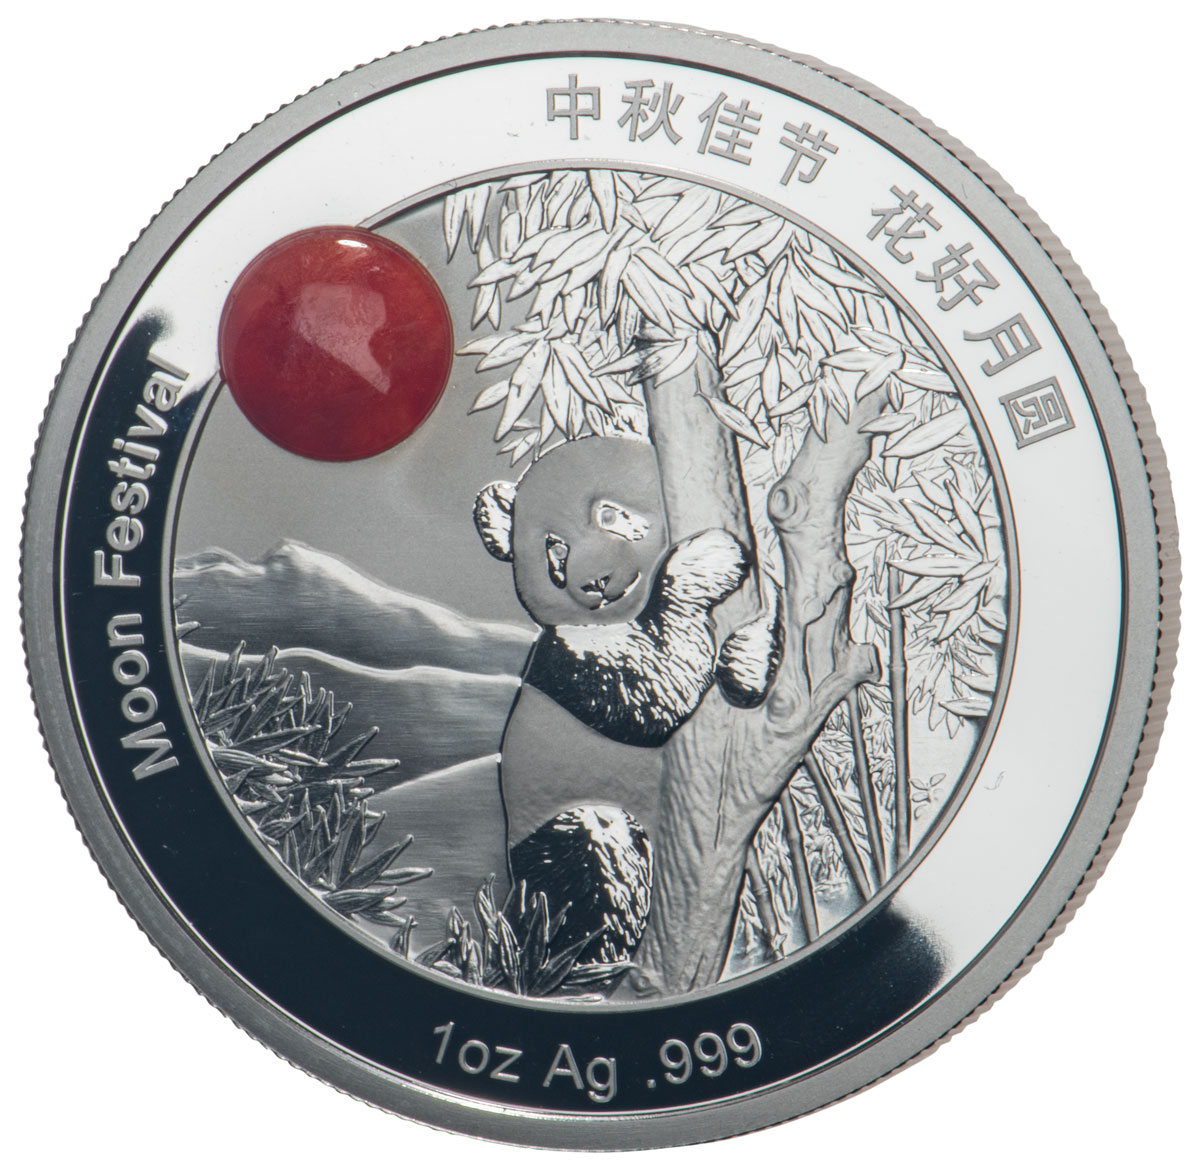 2019 China Moon Panda w/ Red Jade Insert 1 oz Silver Proof Medal GEM Proof Deluxe Packaging, Moon Festival Booklet & COA